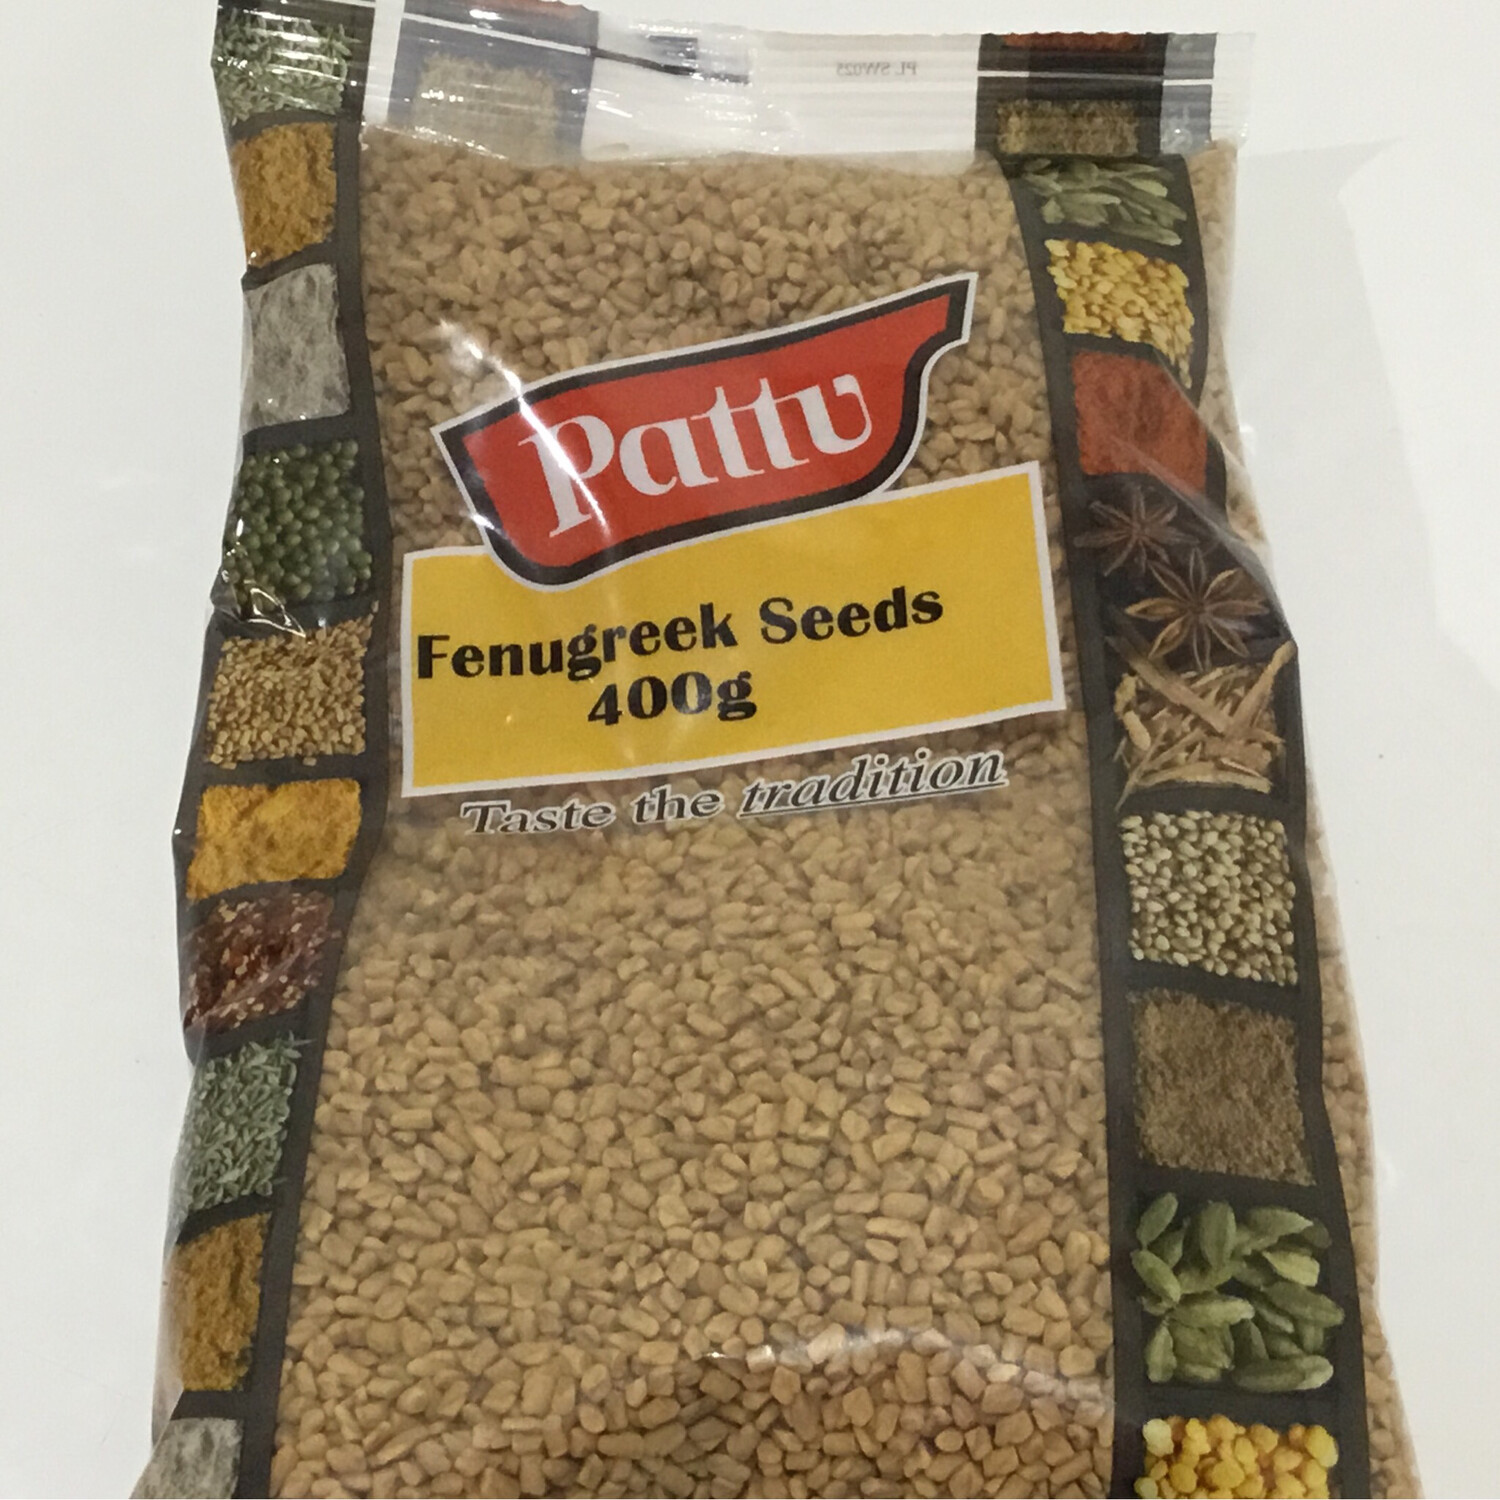 PATTU FENUGREEK SEEDS 400 G